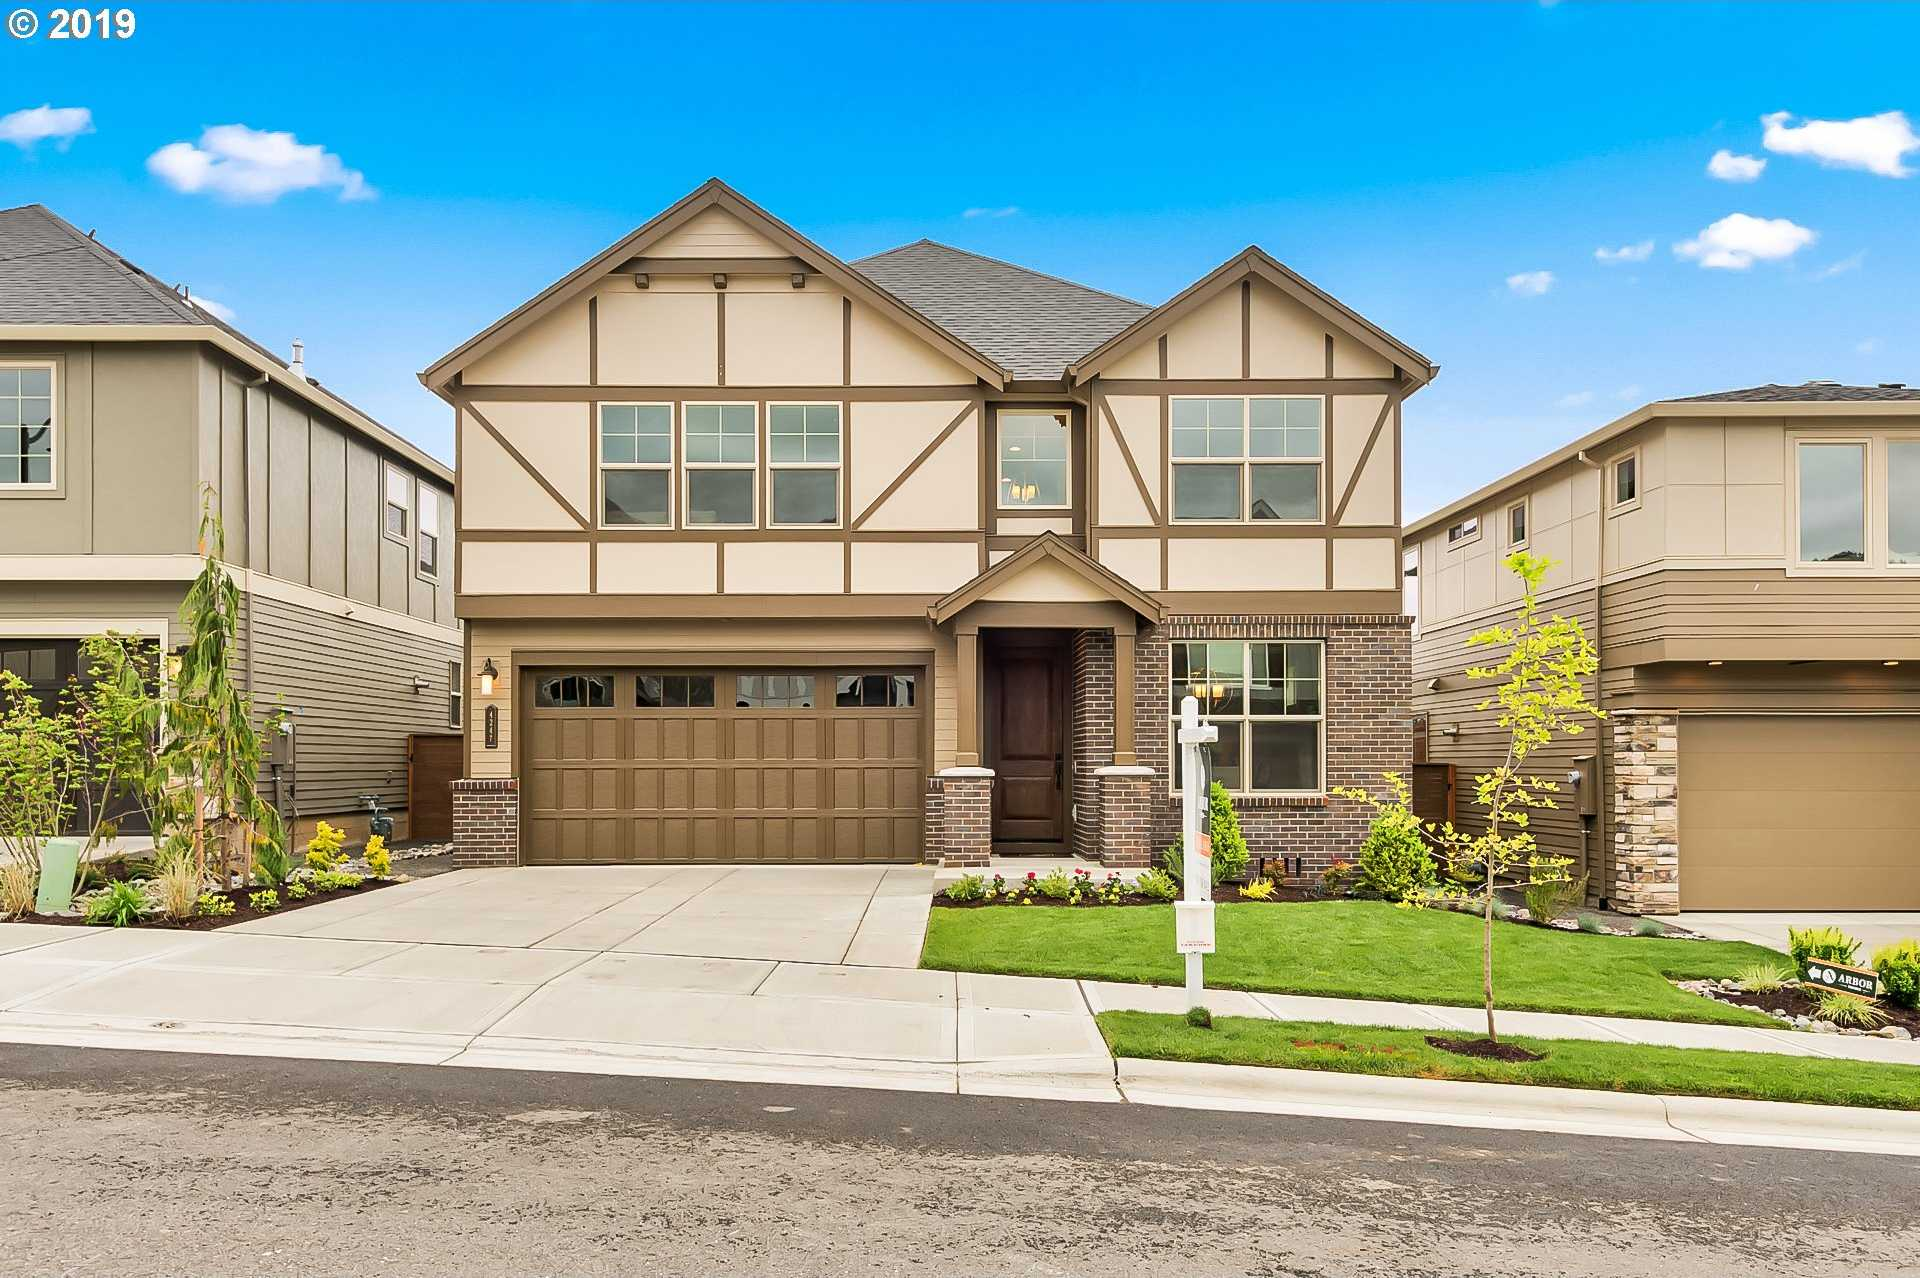 $809,900 - 5Br/3Ba -  for Sale in Thompson Woods, Portland